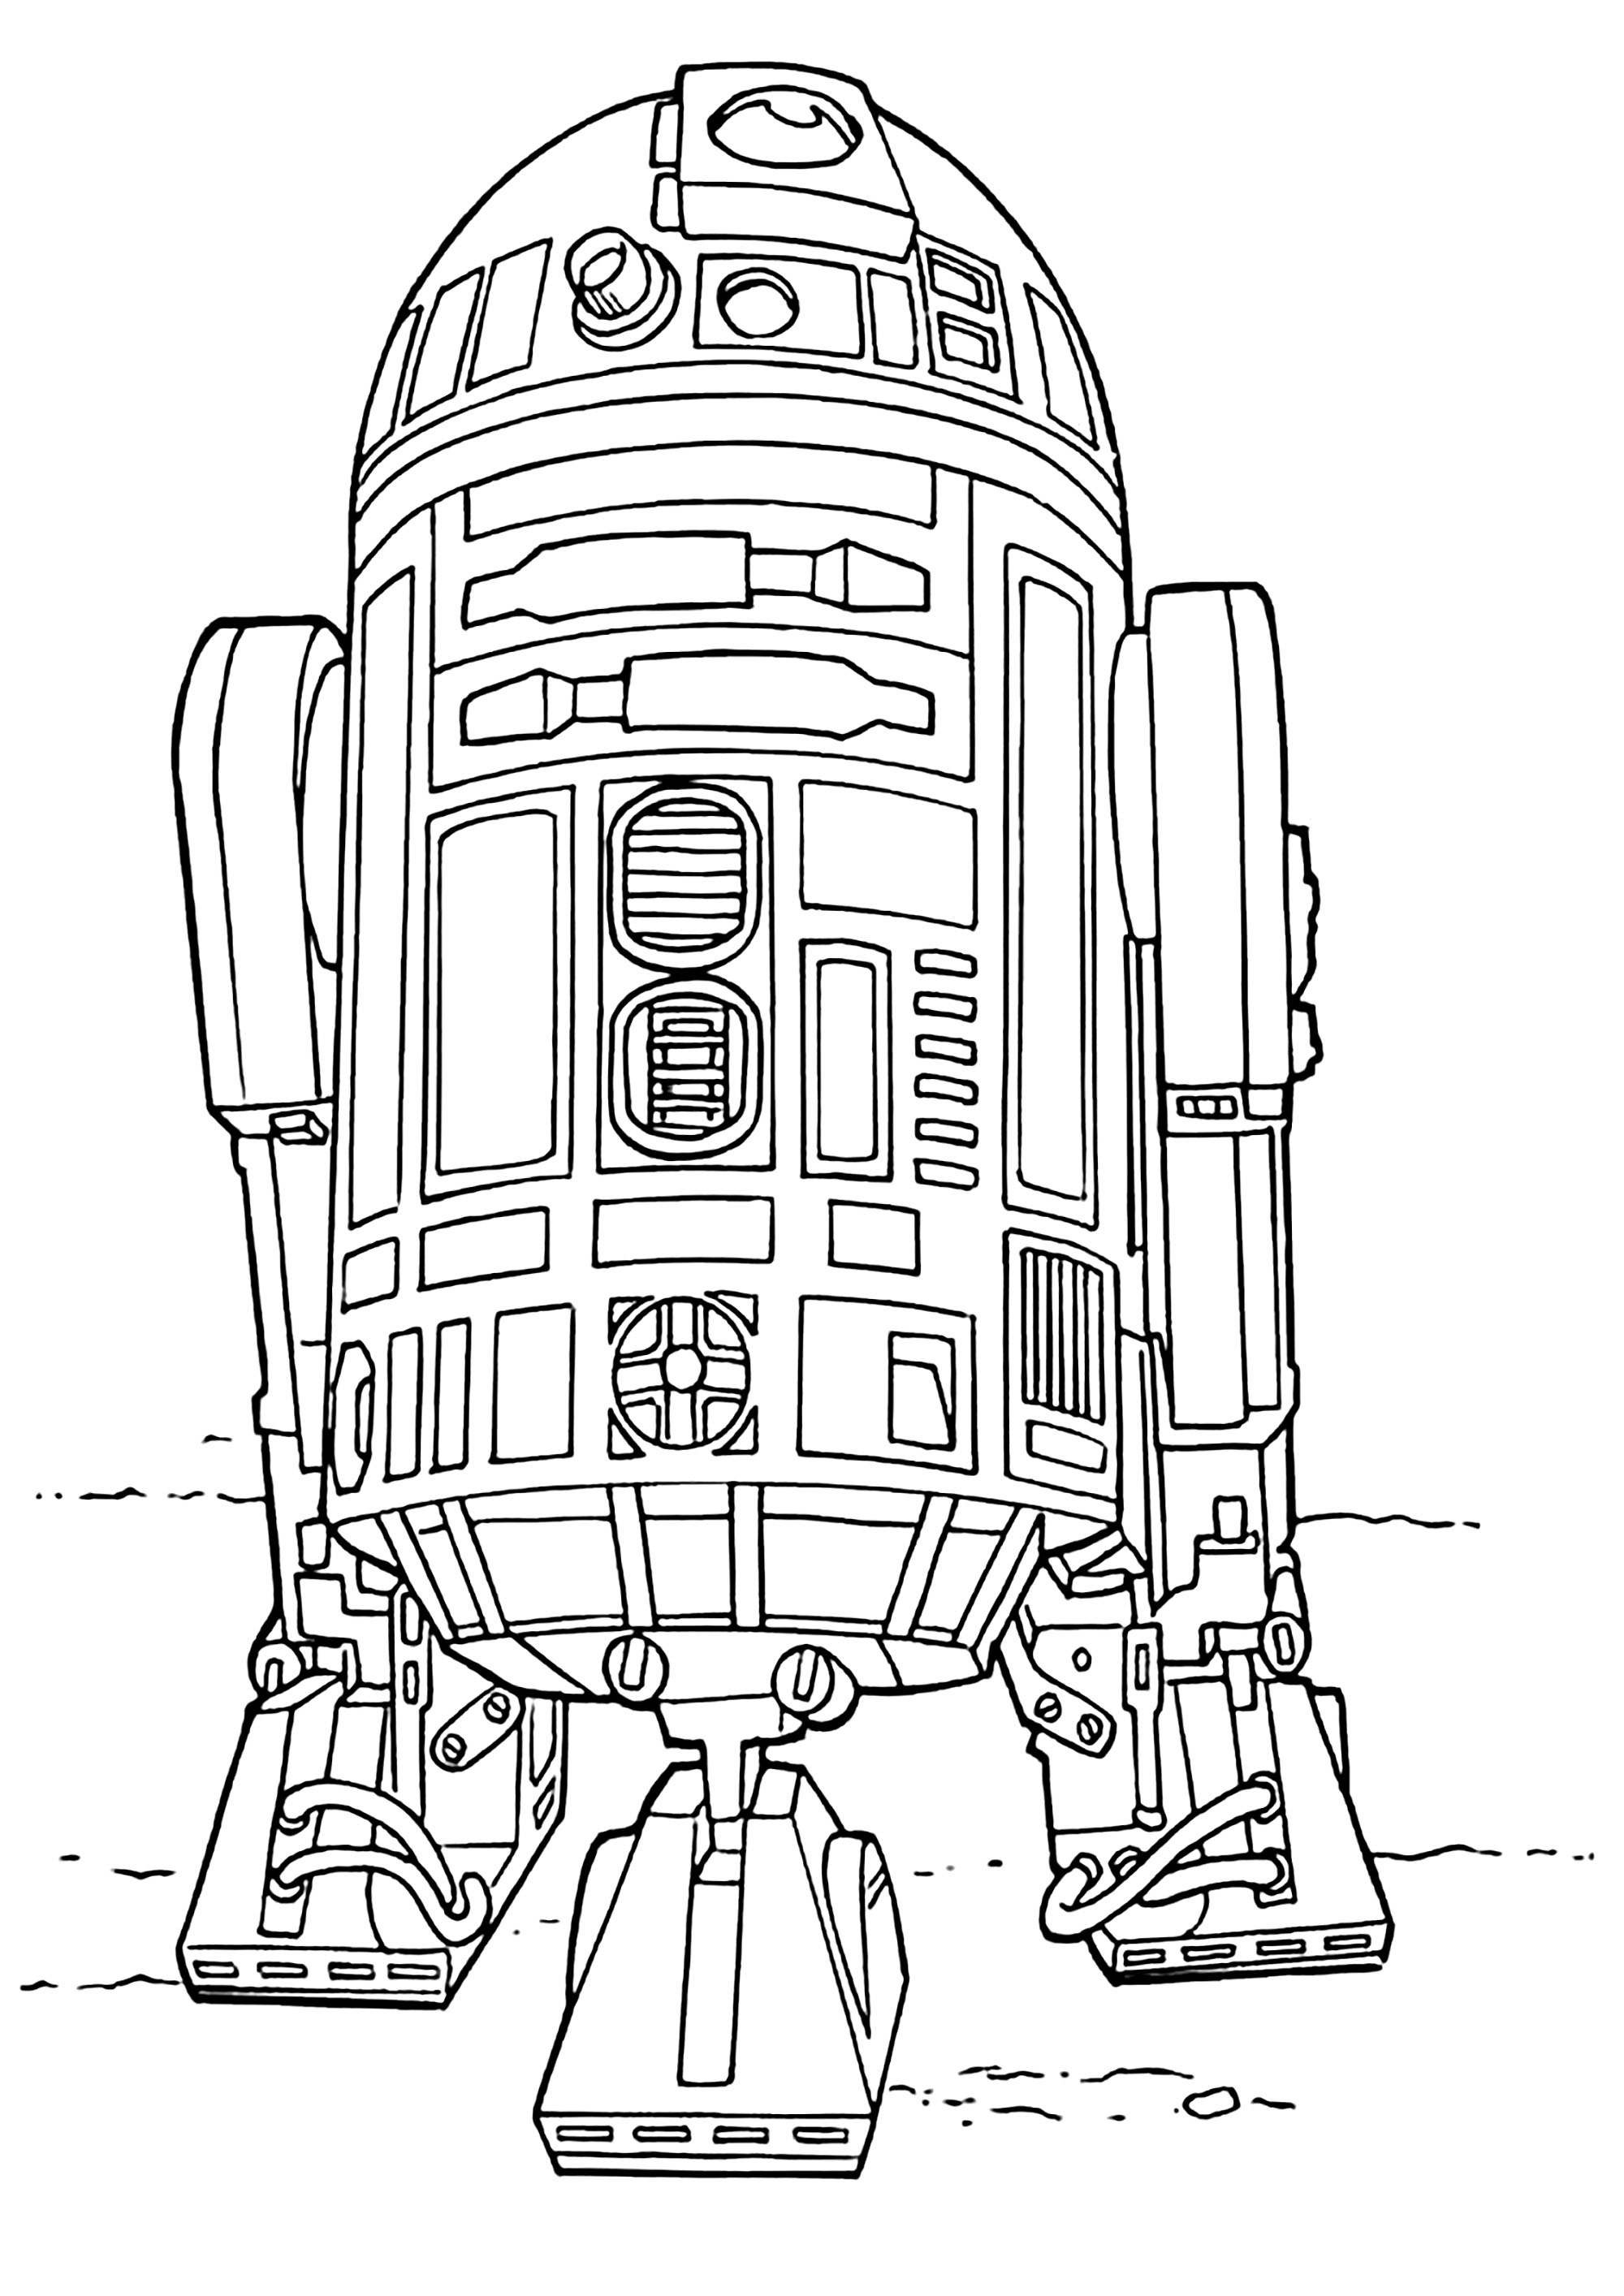 star wars the clone wars pictures to print free printable star wars coloring pages free printable to the pictures star wars clone print wars